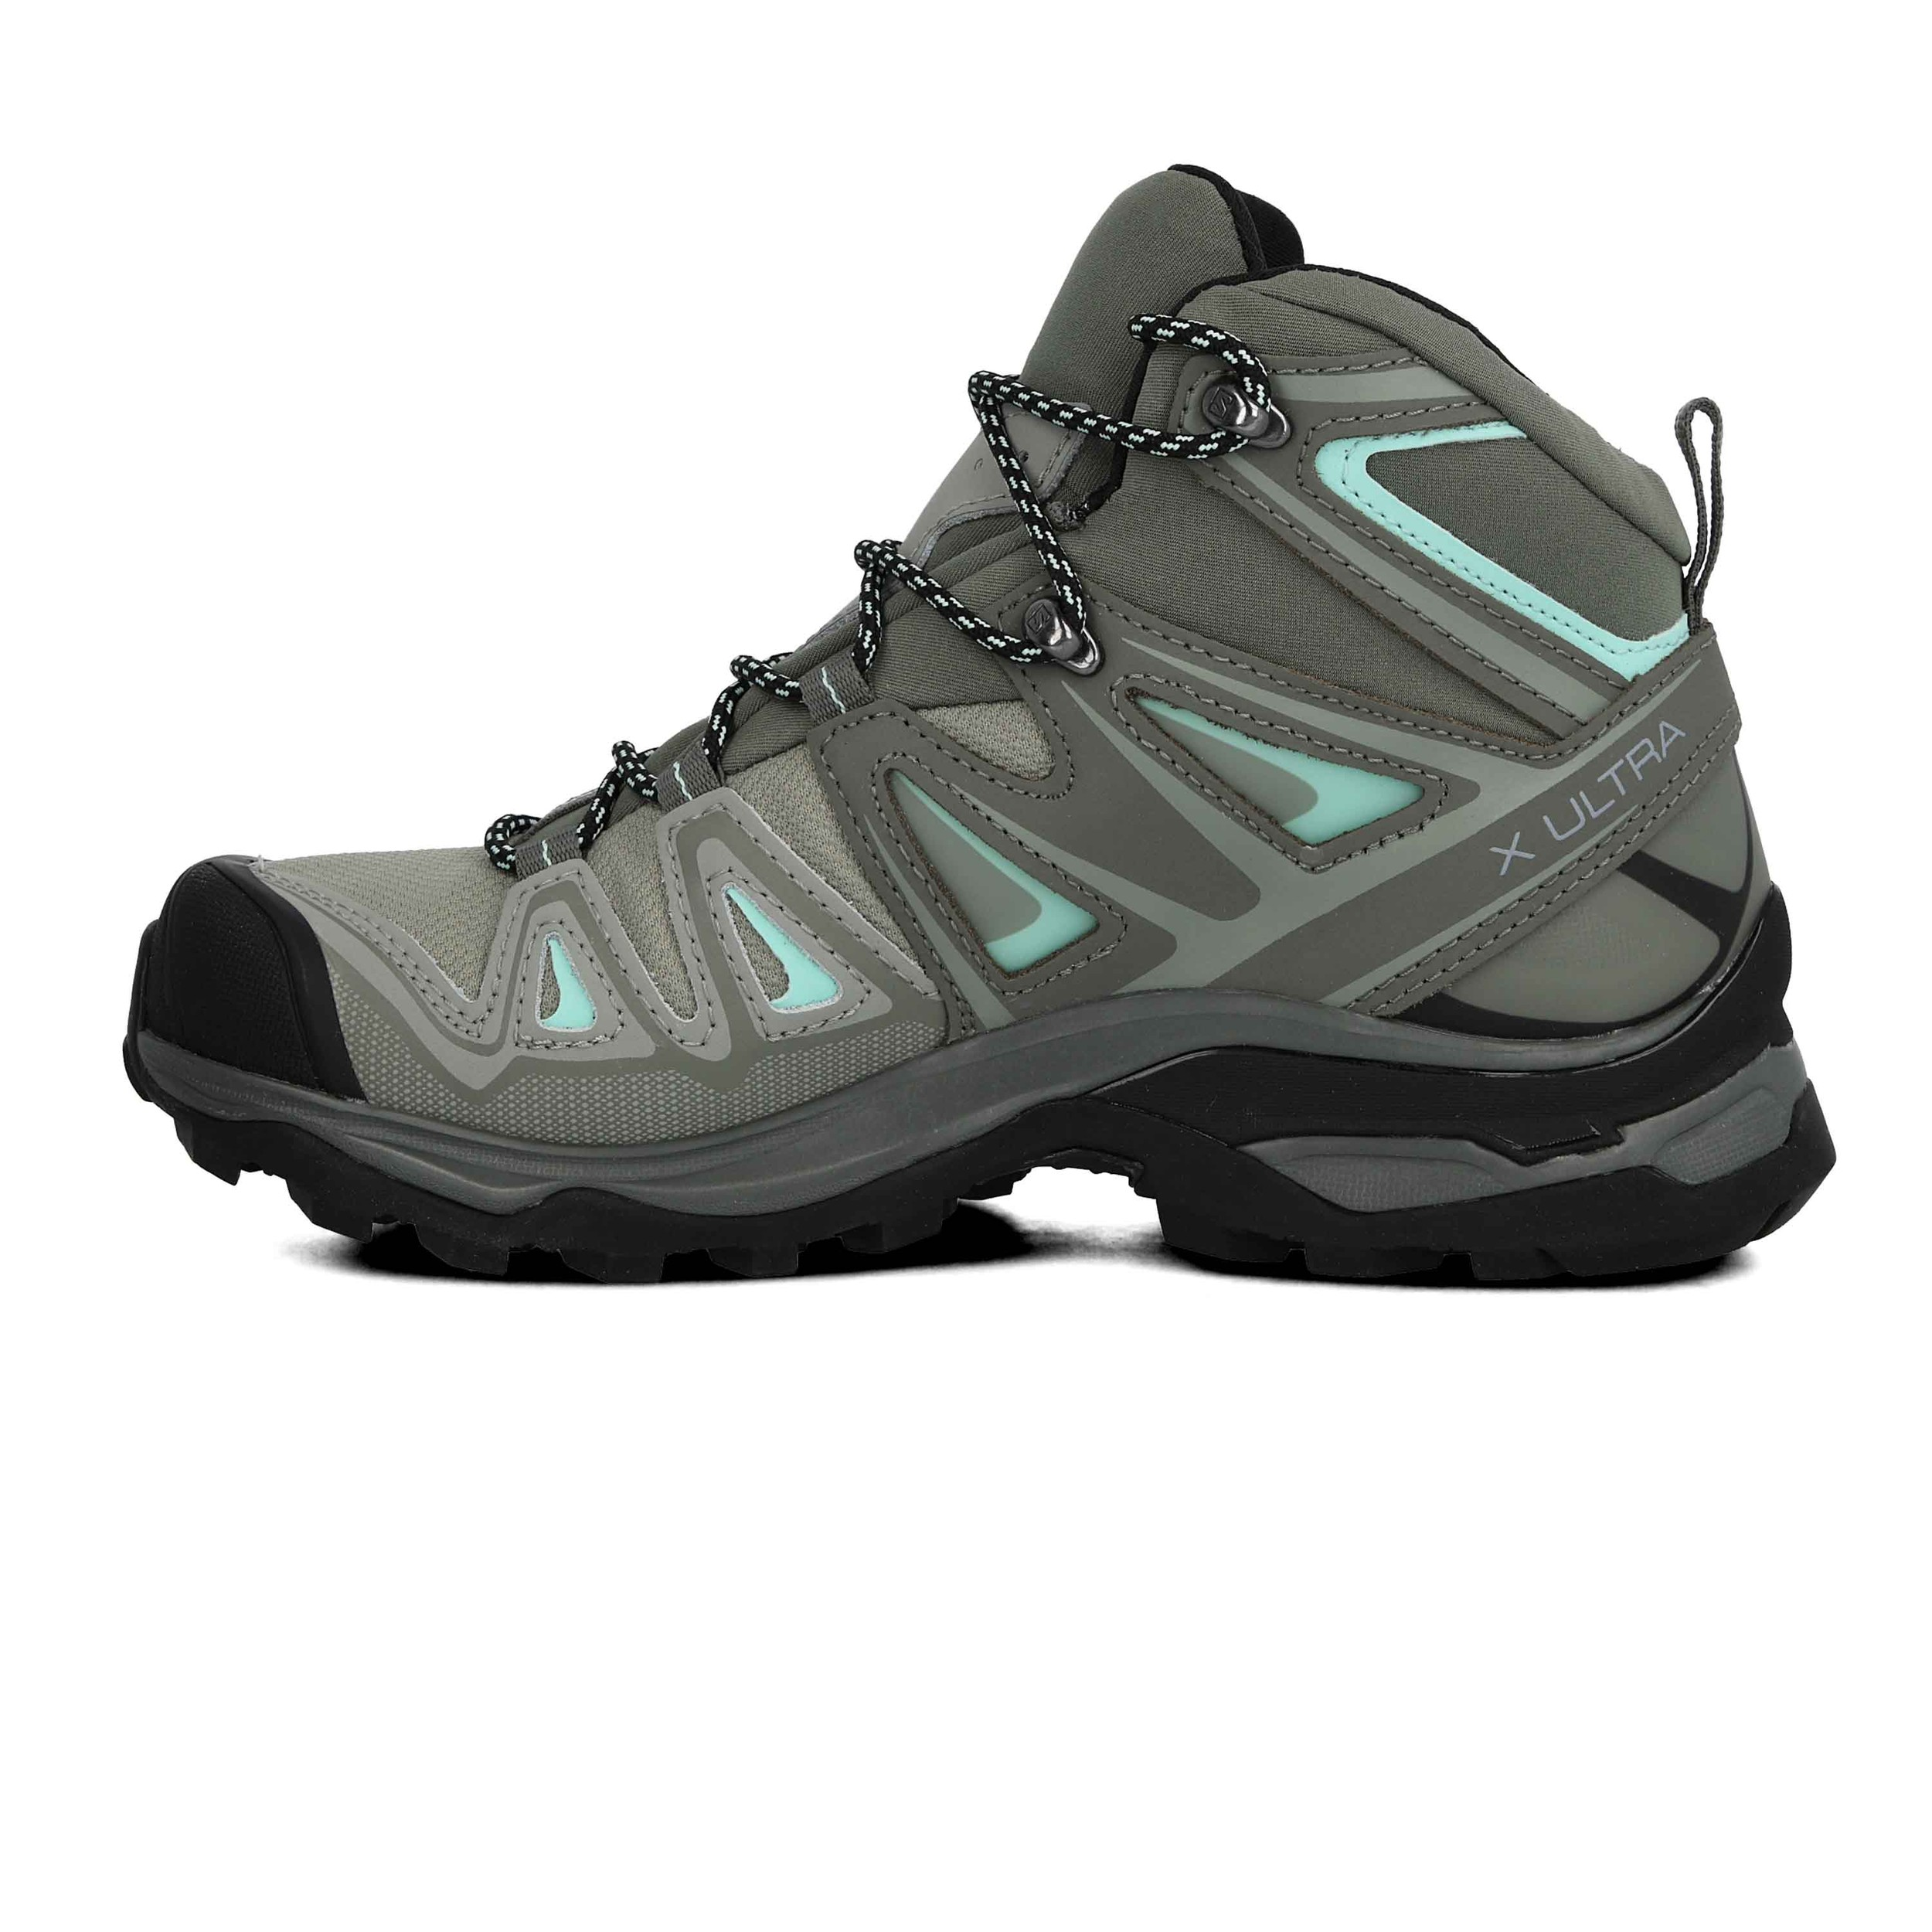 new product 142f0 de564 El botín integral de GORE-TEX® garantiza un rendimiento transpirable e  impermeable.